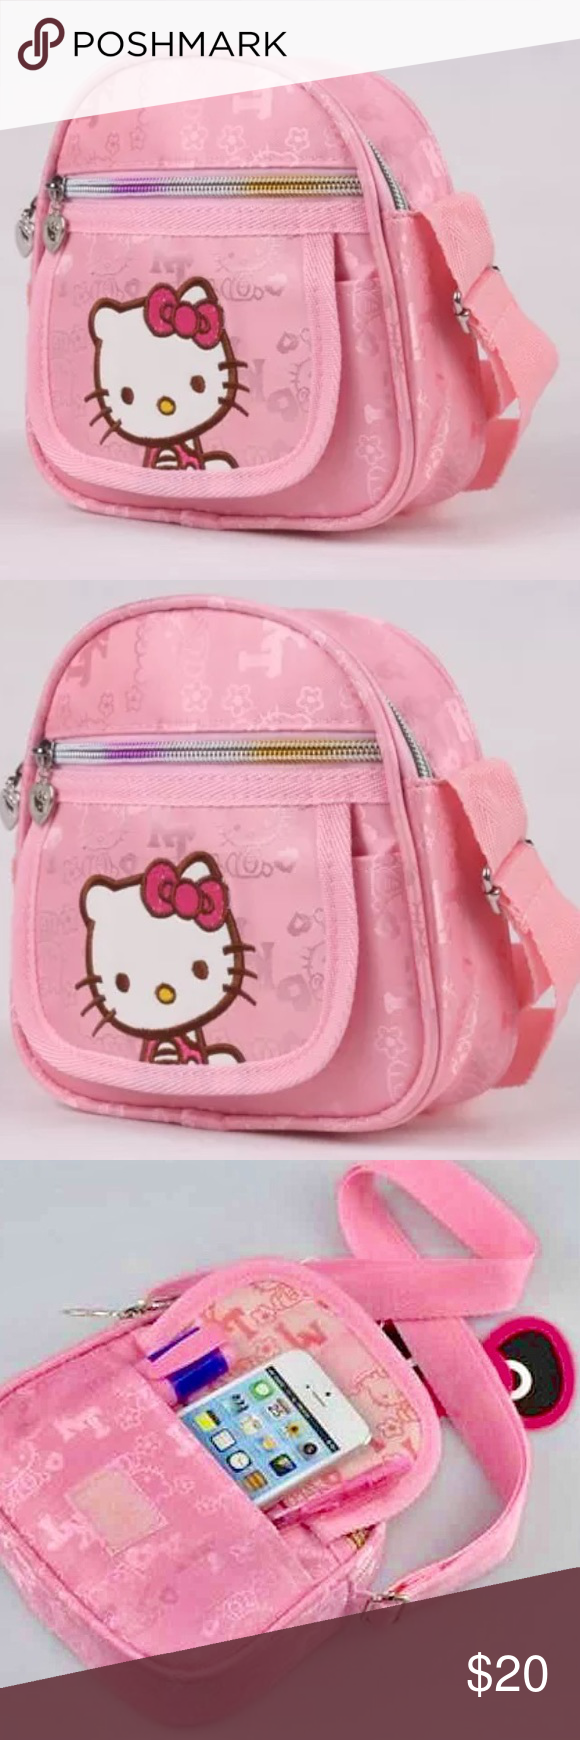 Small Hello Kitty Cute Pink Purse, For Girls Small Hello